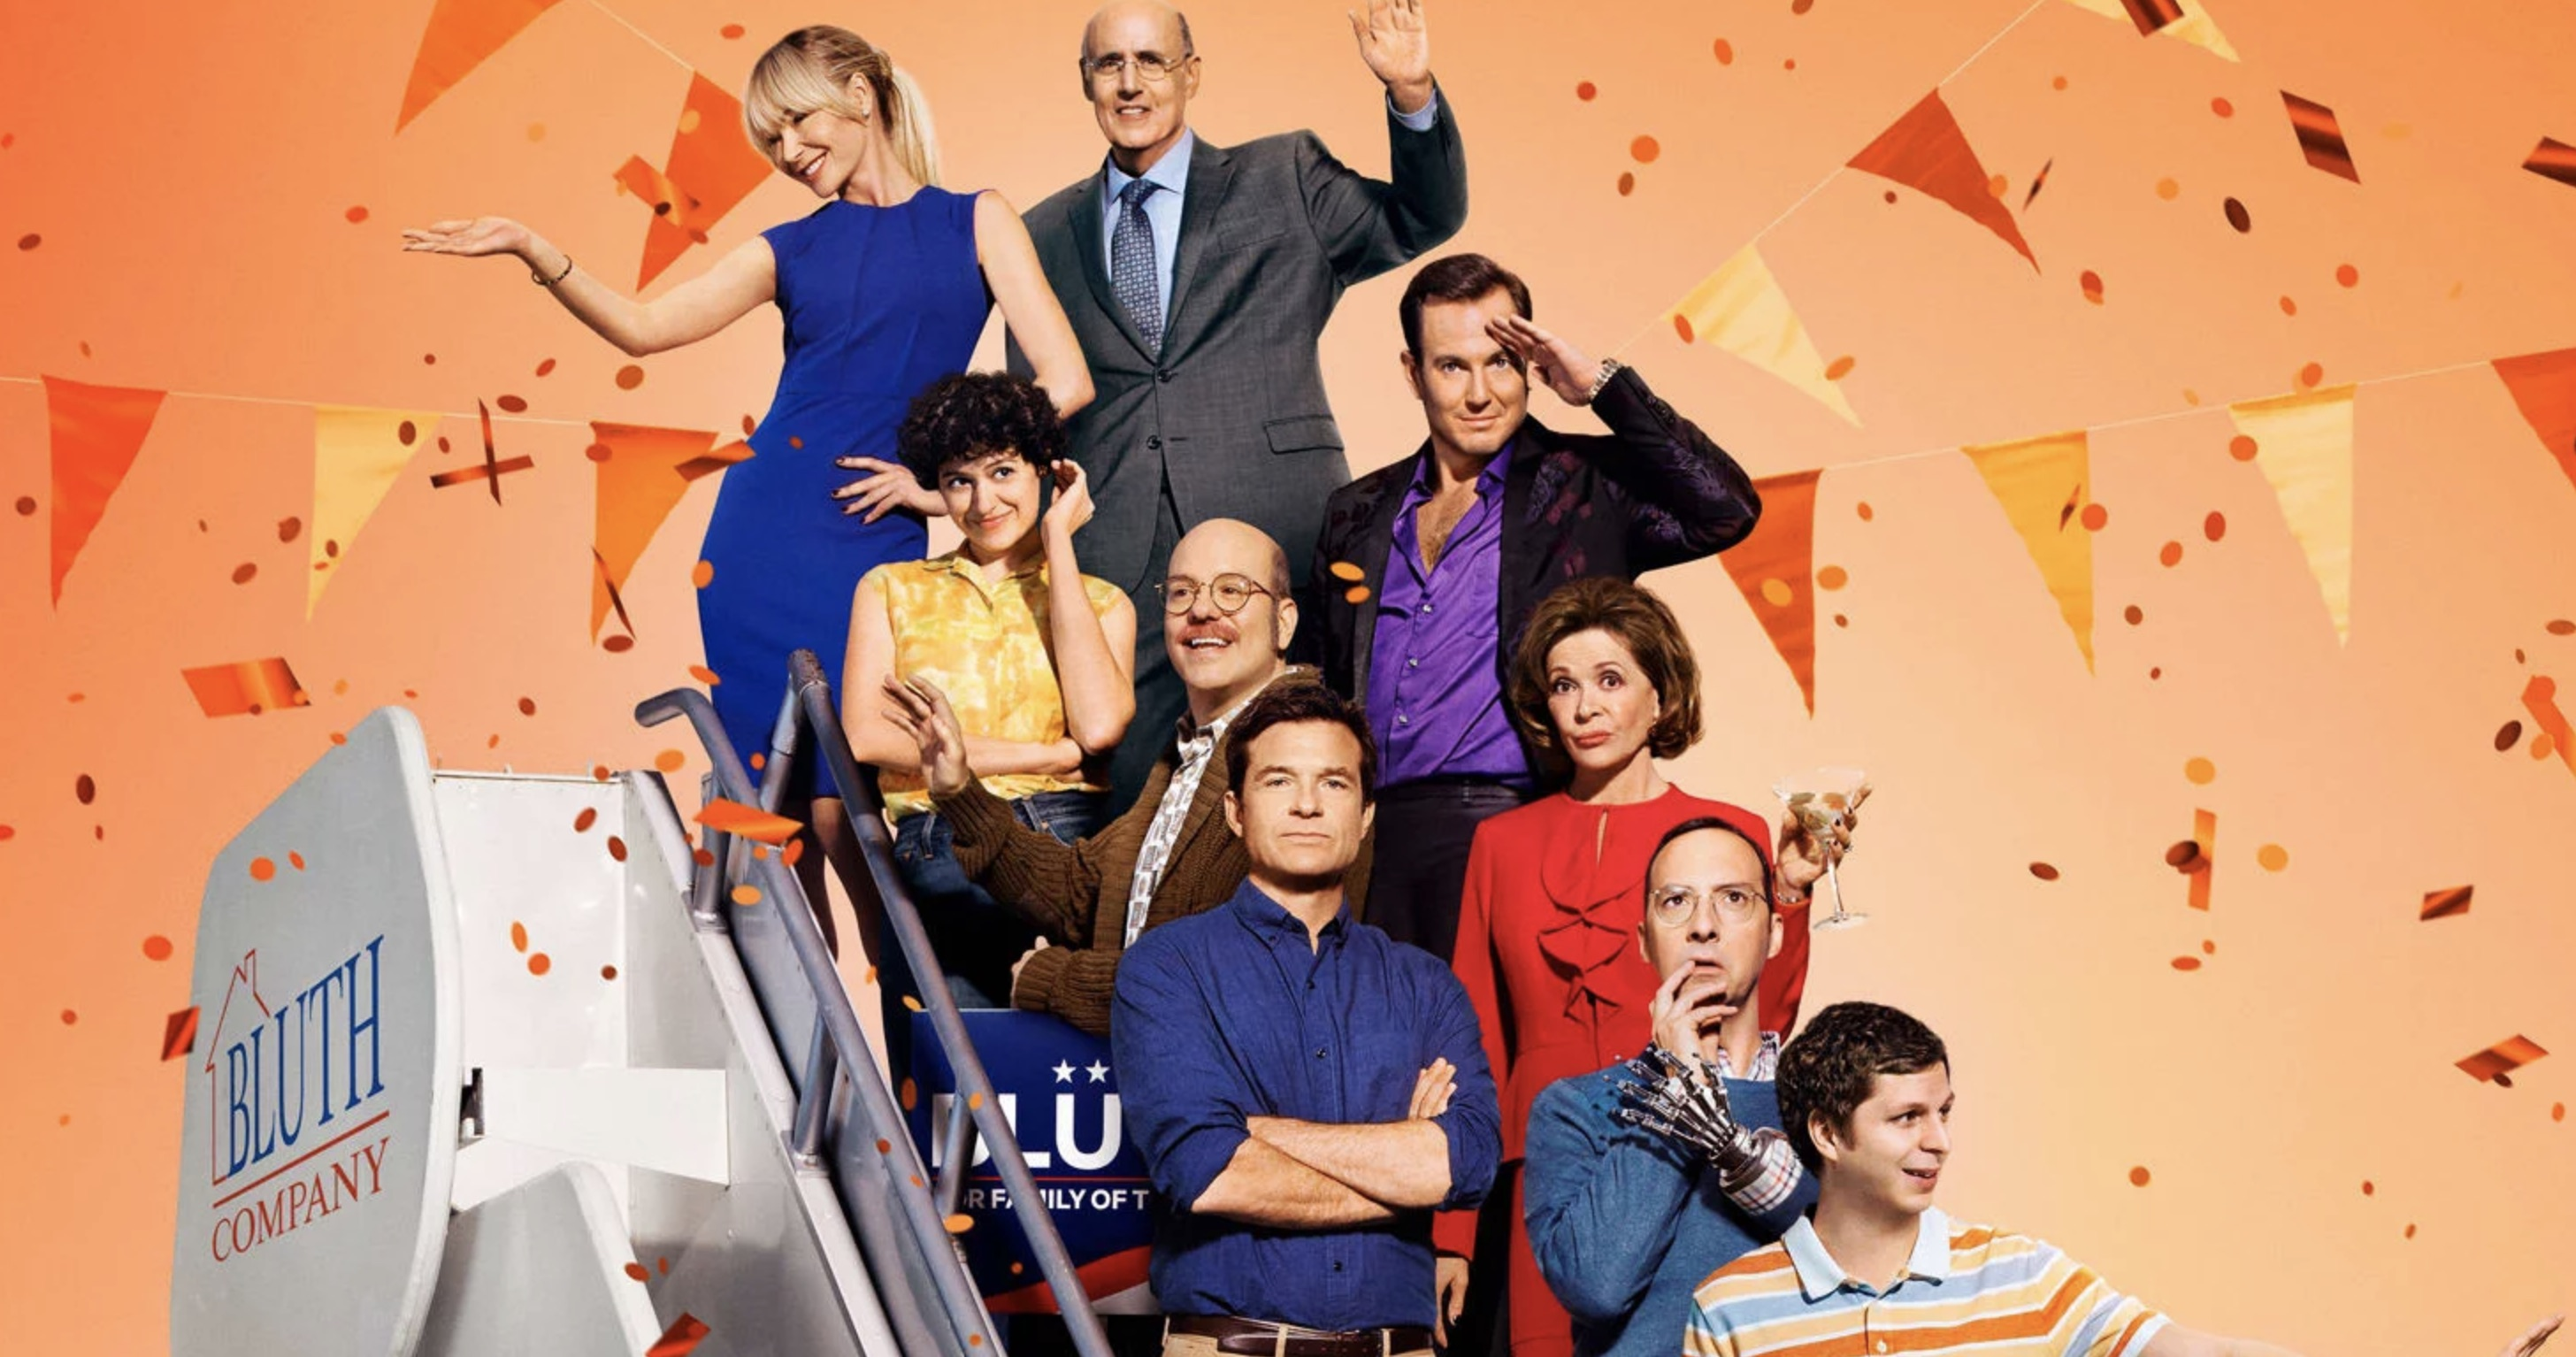 arrested development season 5 review it s time to let this show end